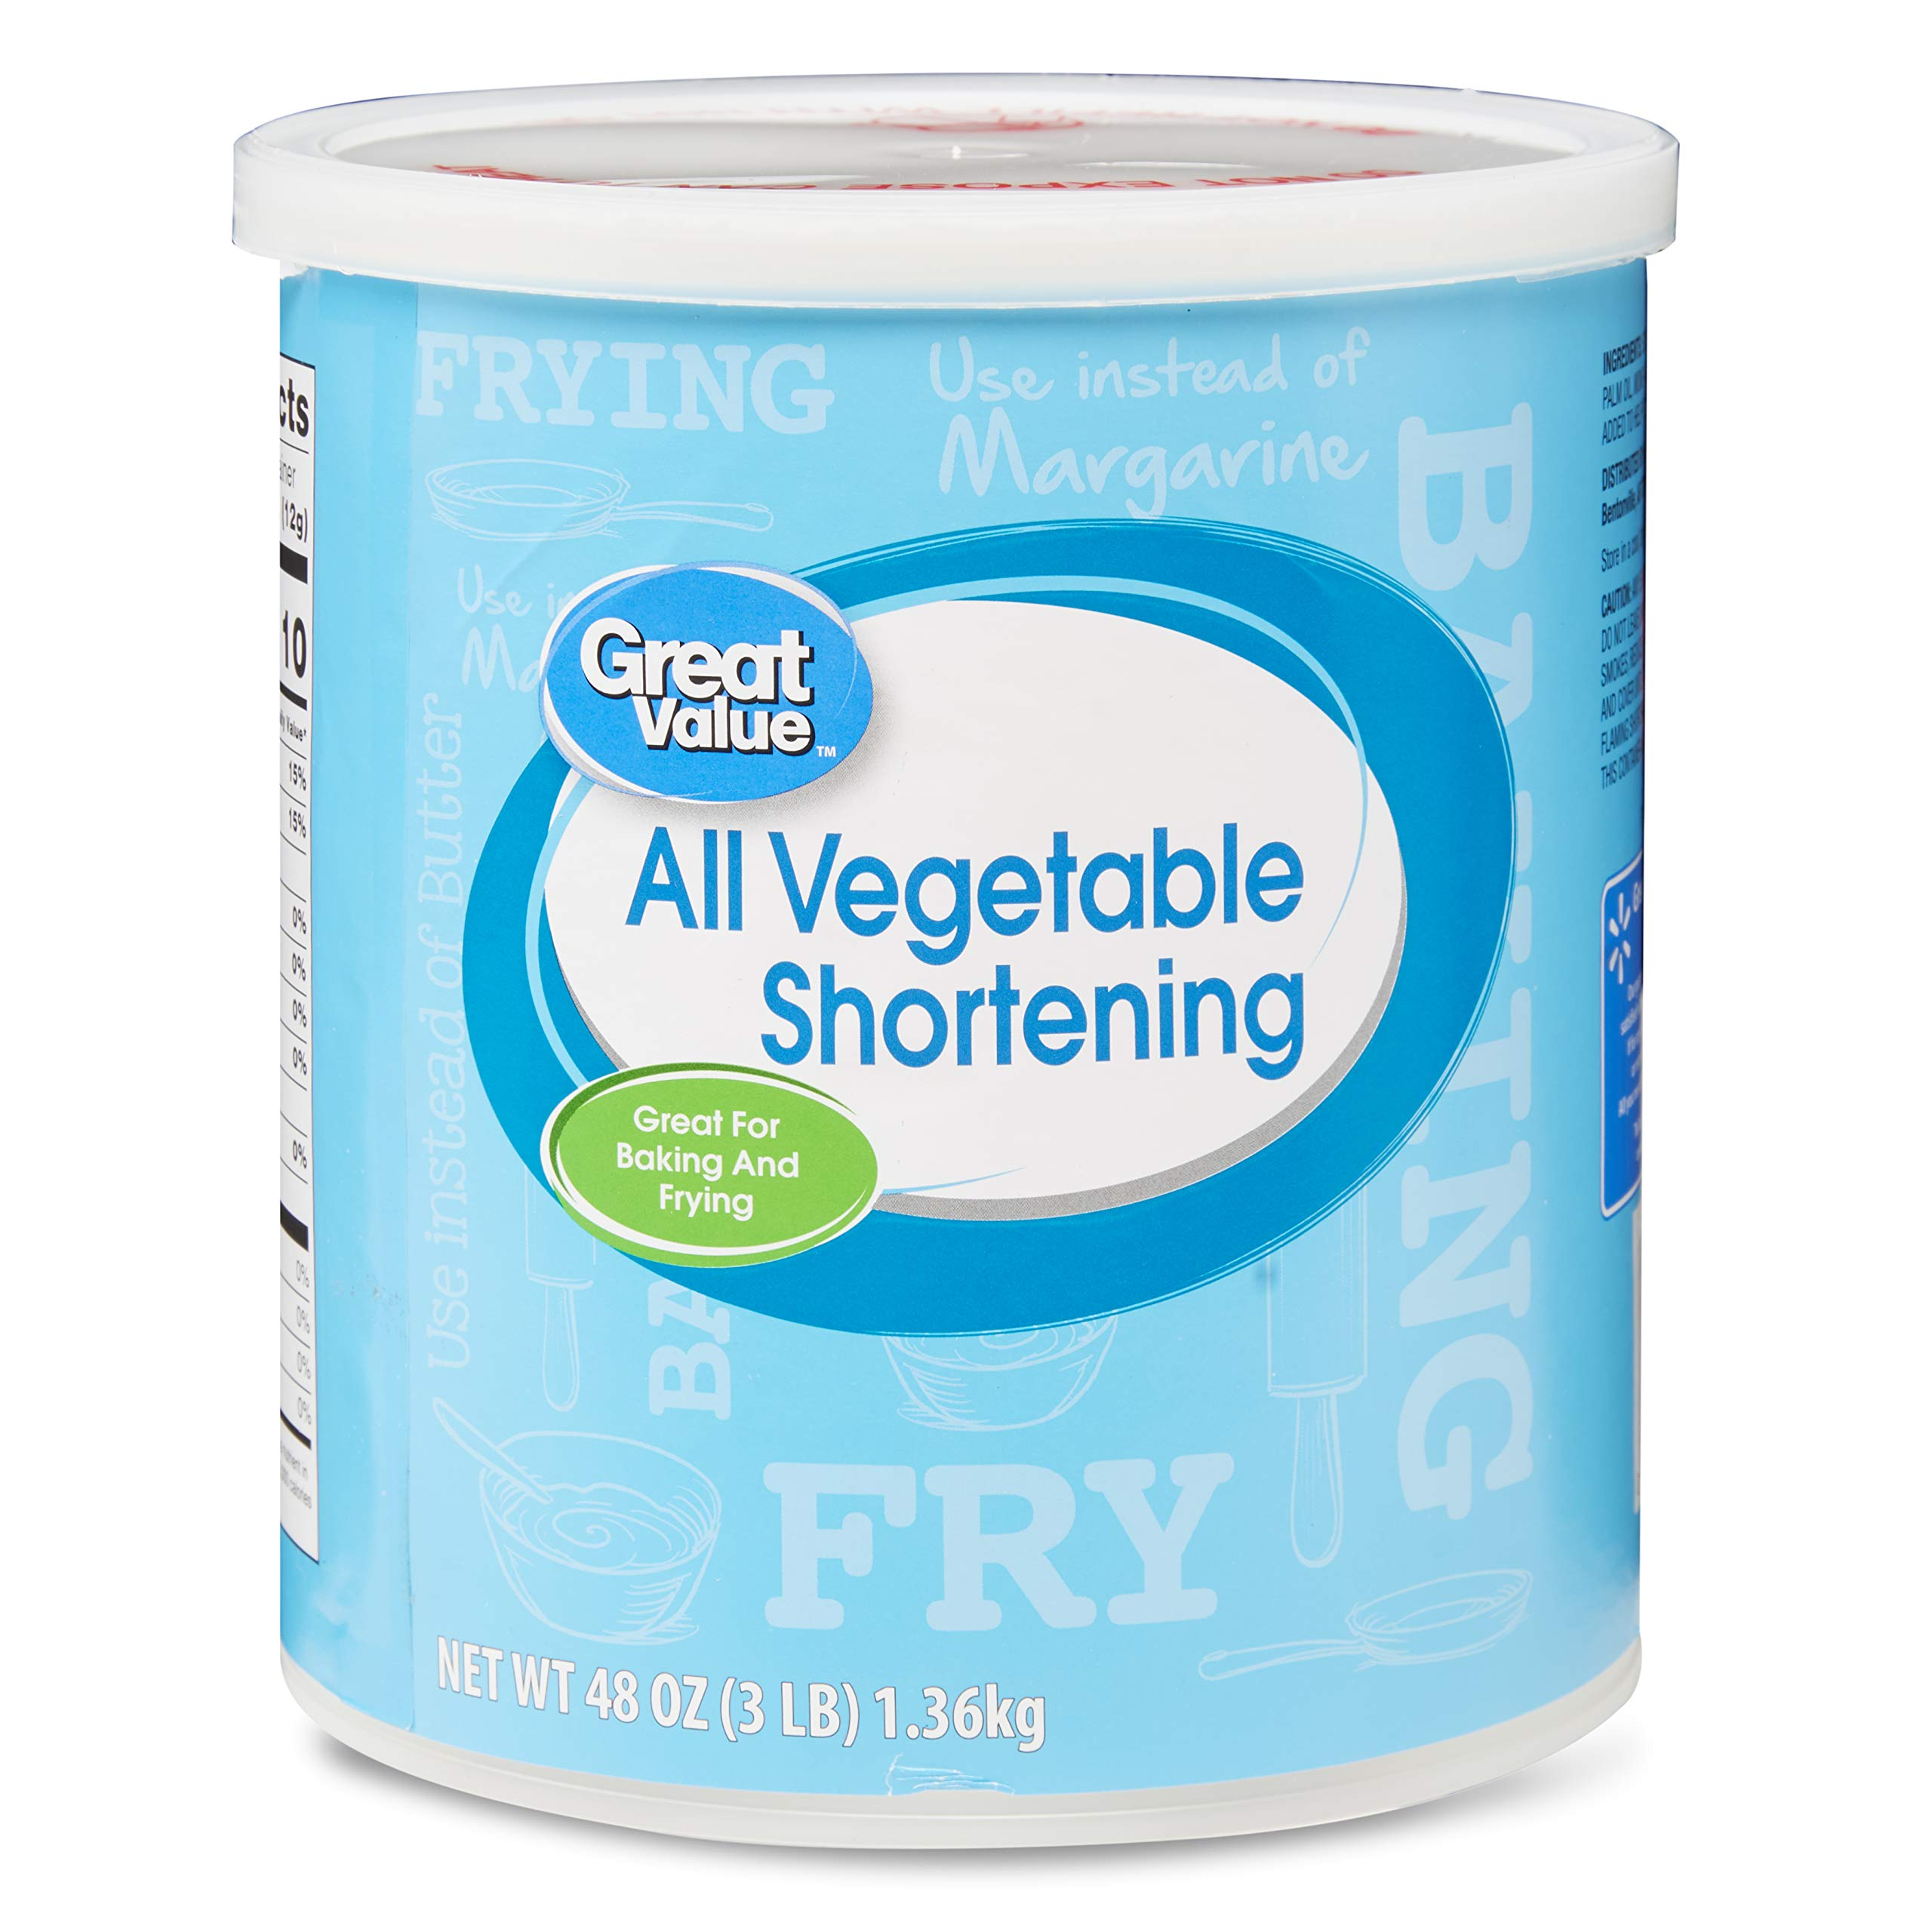 PACK OF 10 - Great Value: All-Vegetable Shortening, 48 Oz by Great Value